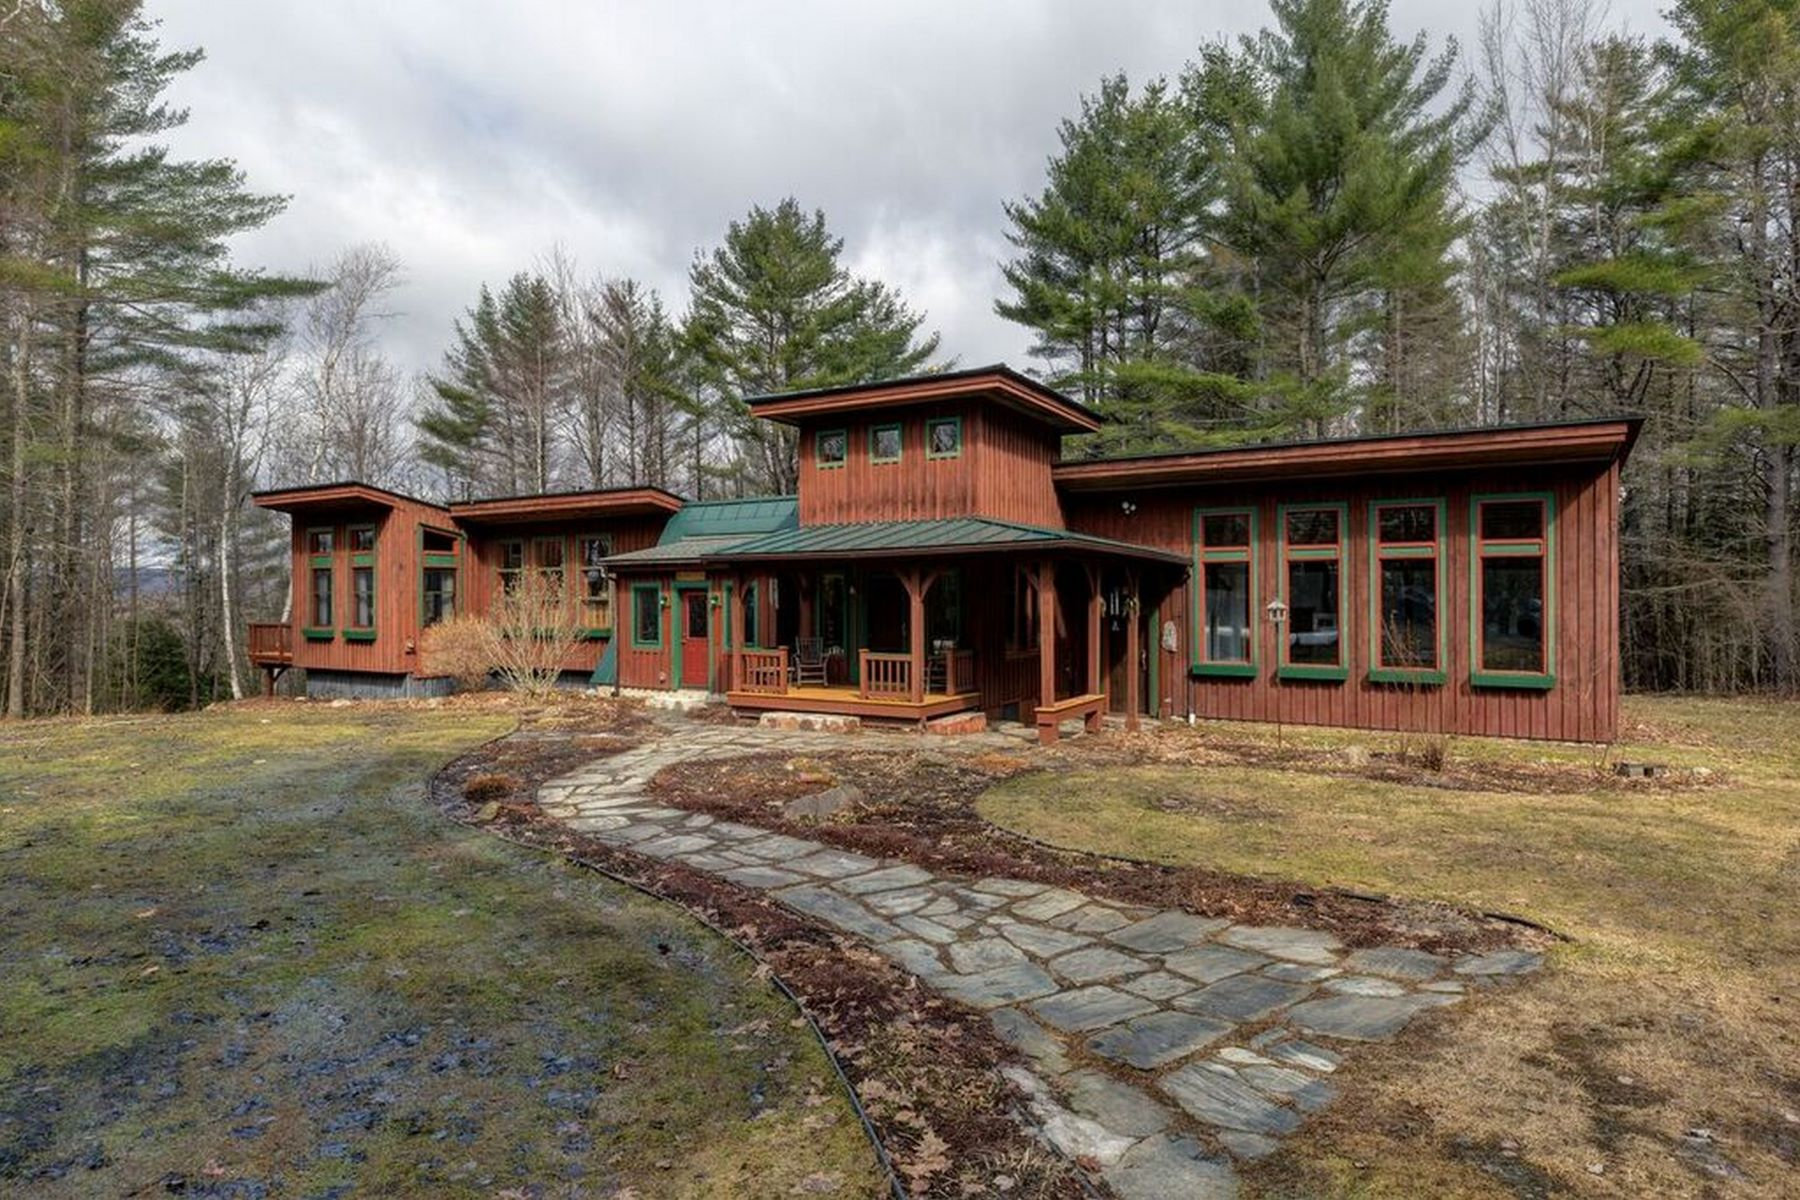 Single Family Home for Sale at Talbert Hill Road 157 Talbert Hill Rd Canaan, New Hampshire 03741 United States